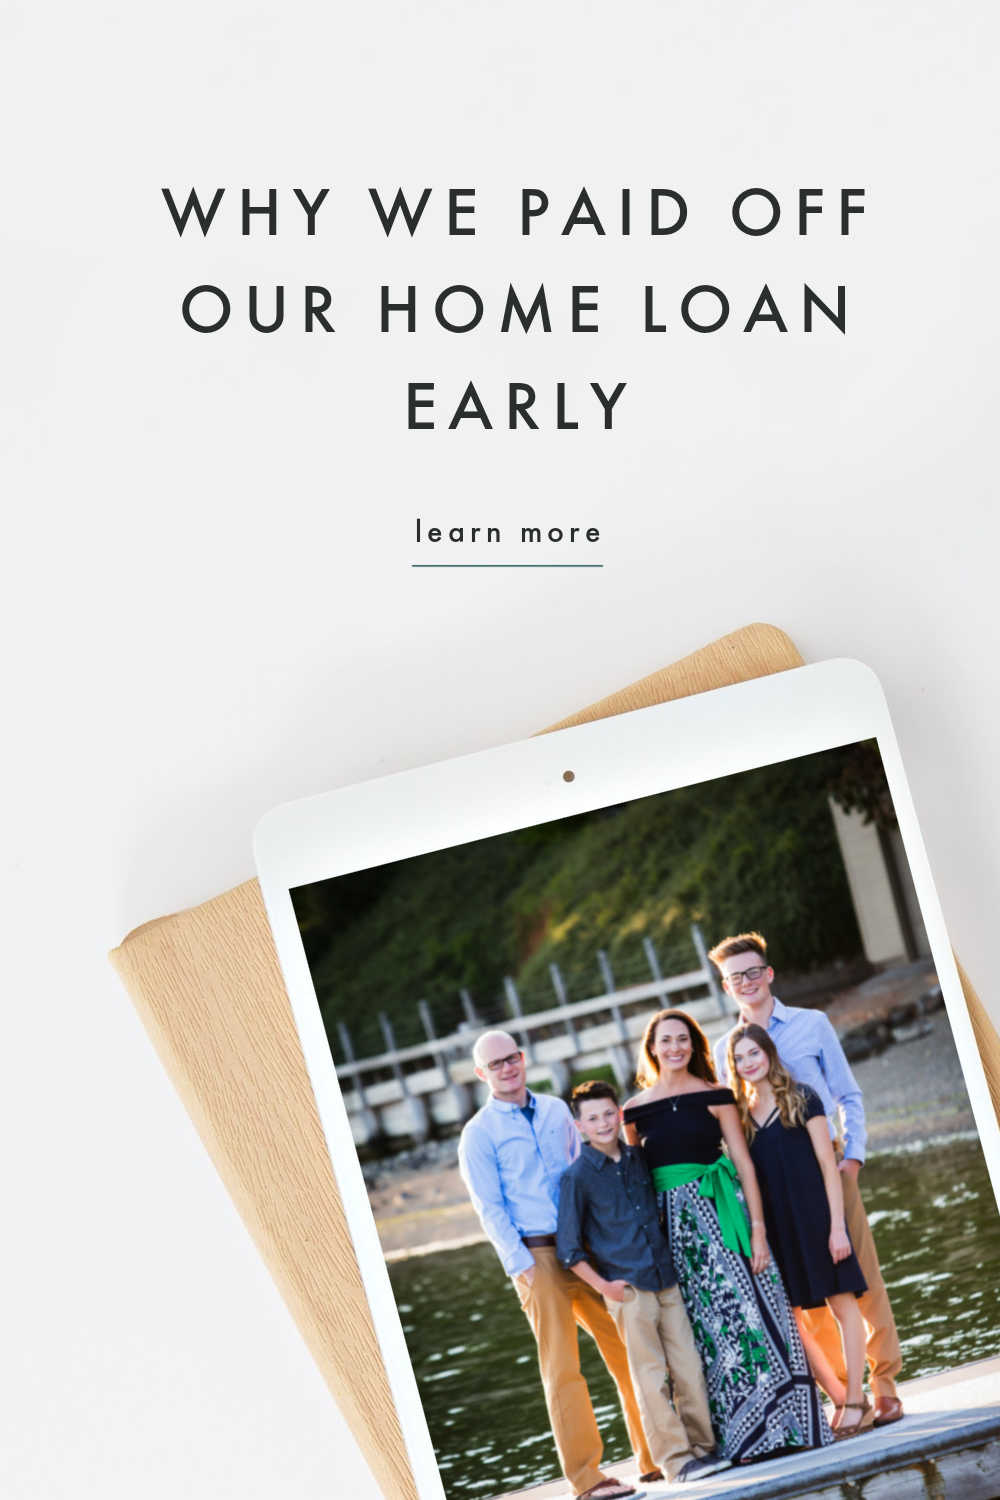 WHY WE PAID OFF OUR HOME LOAN EARLY